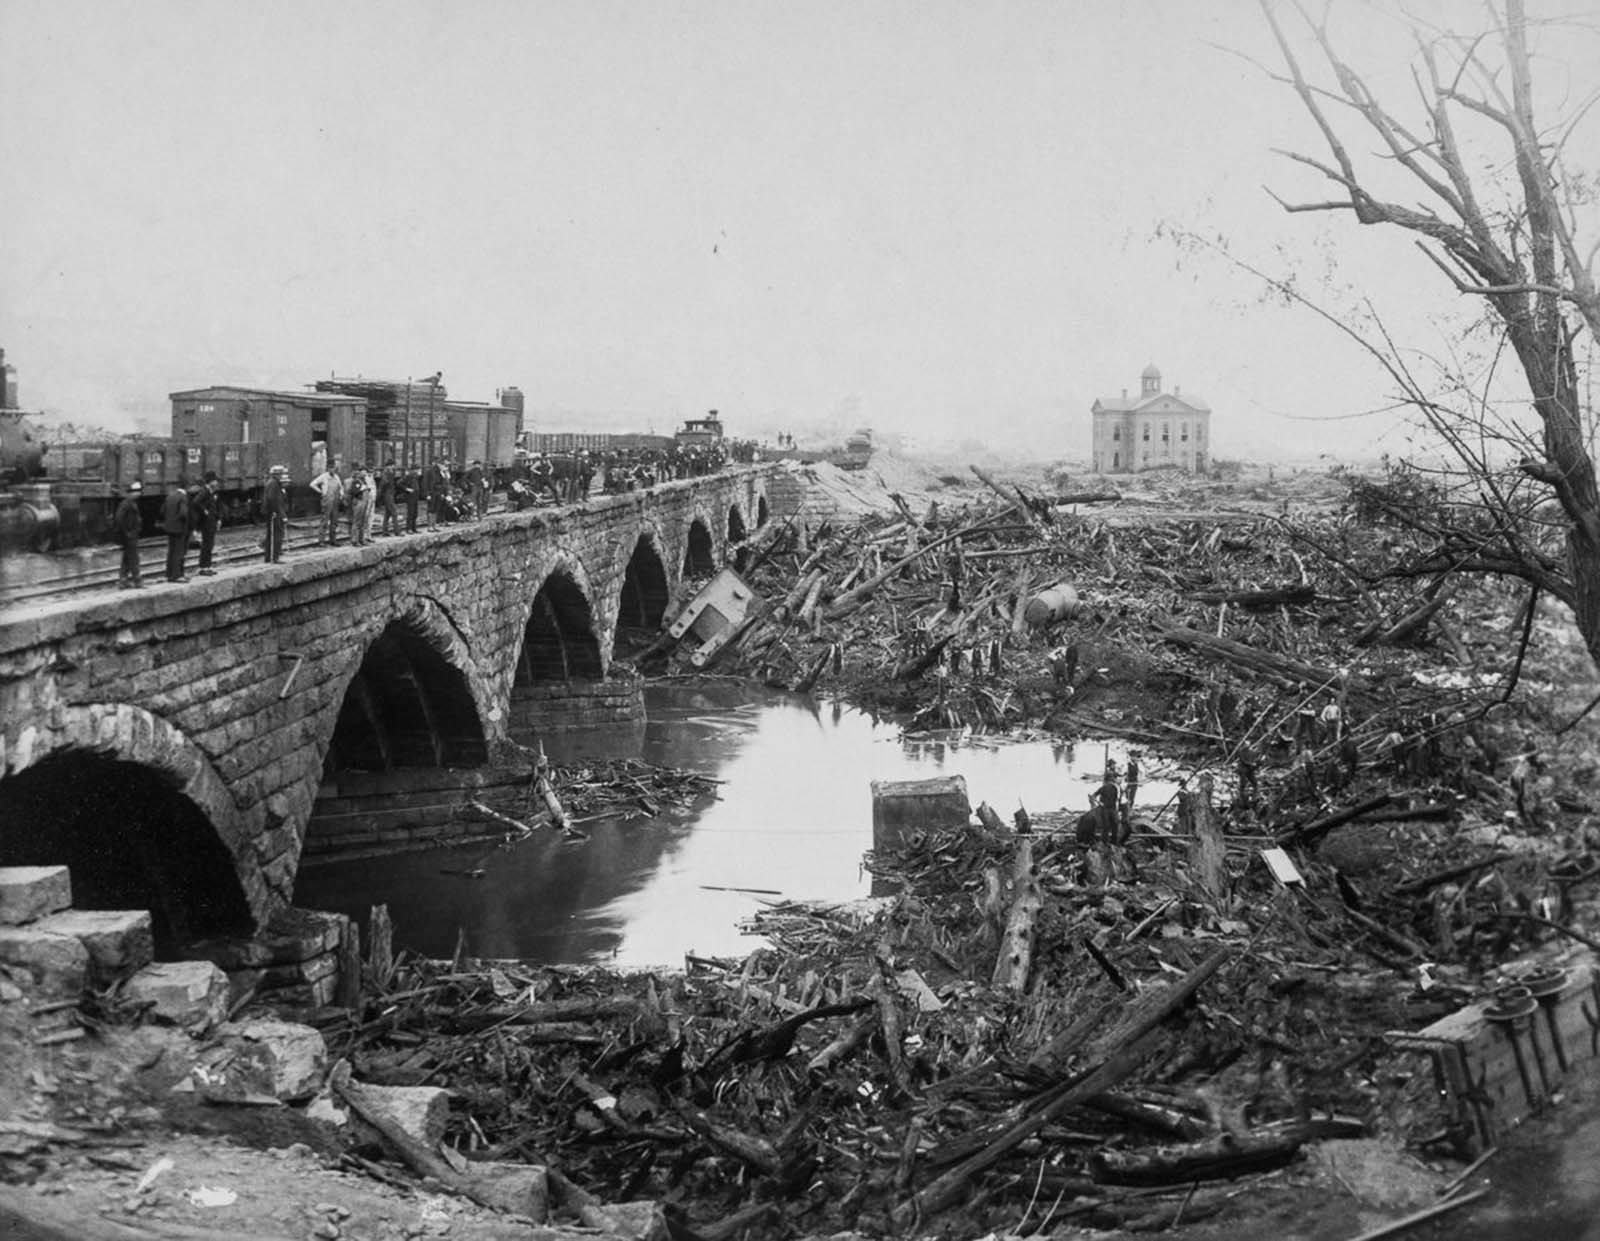 The debris pile at the Stone Bridge.